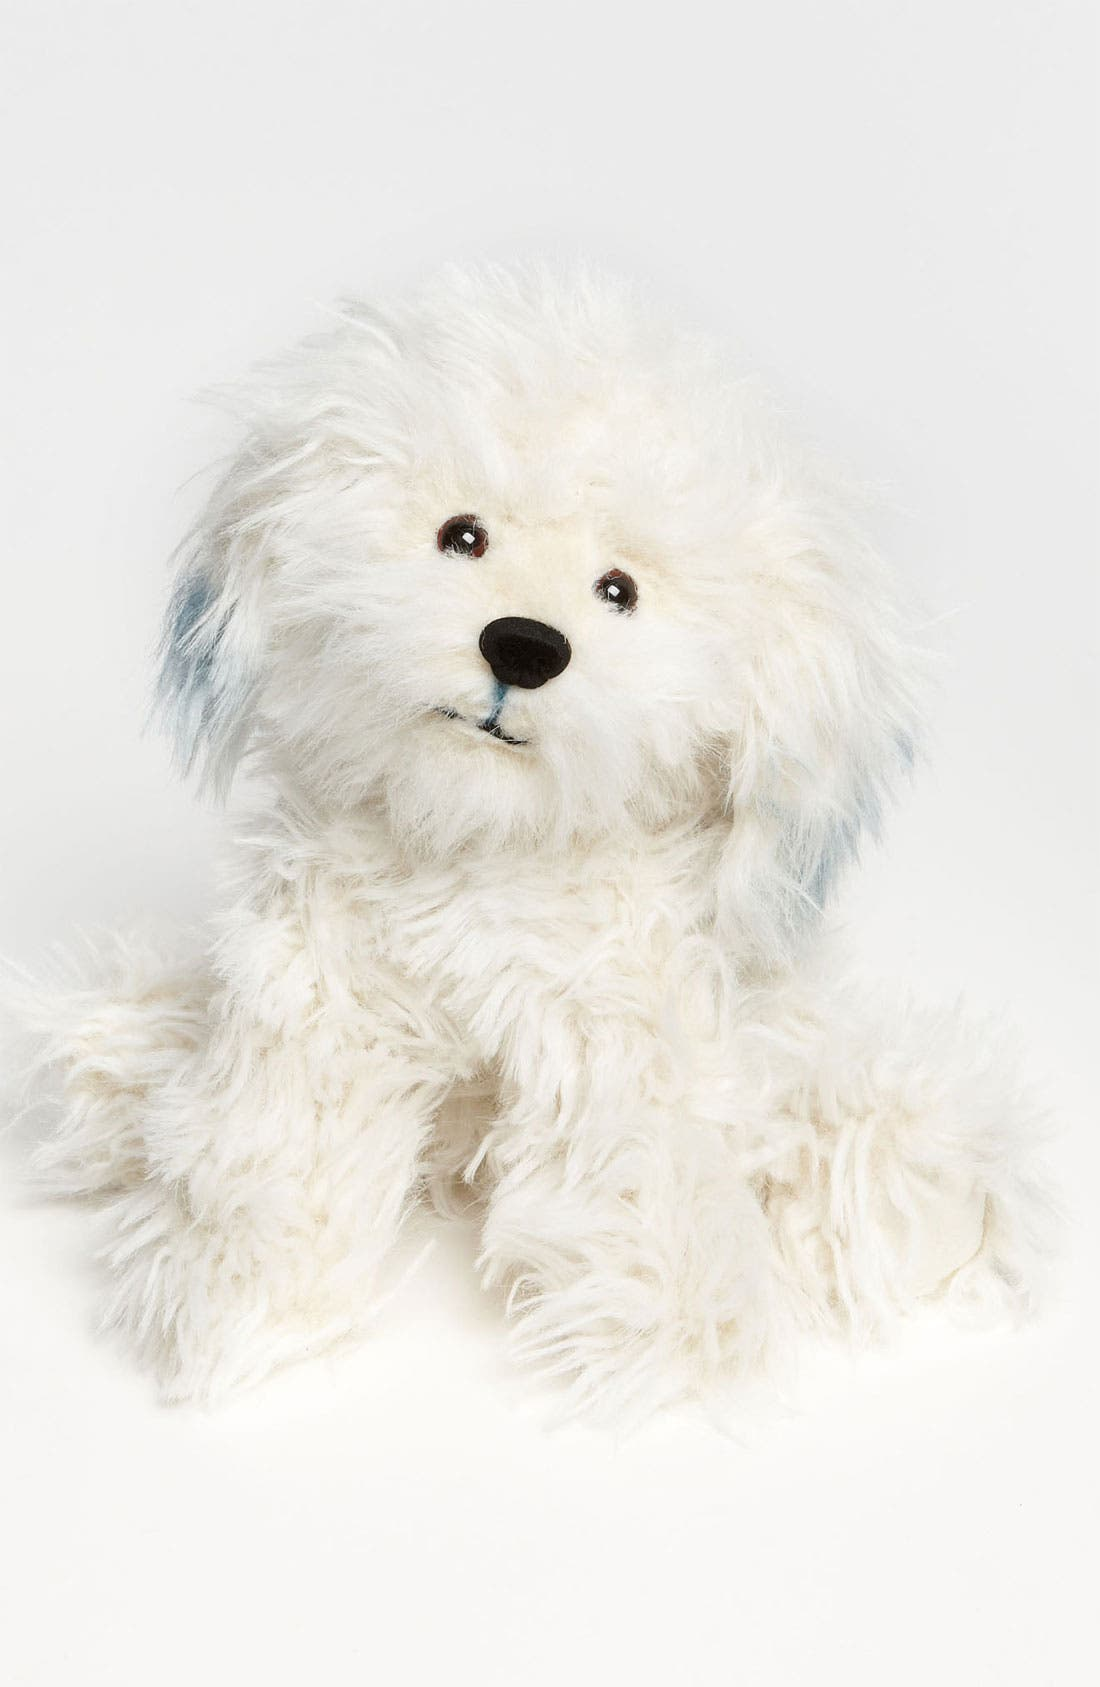 Alternate Image 1 Selected - Gund 'Dreyfus' Stuffed Animal